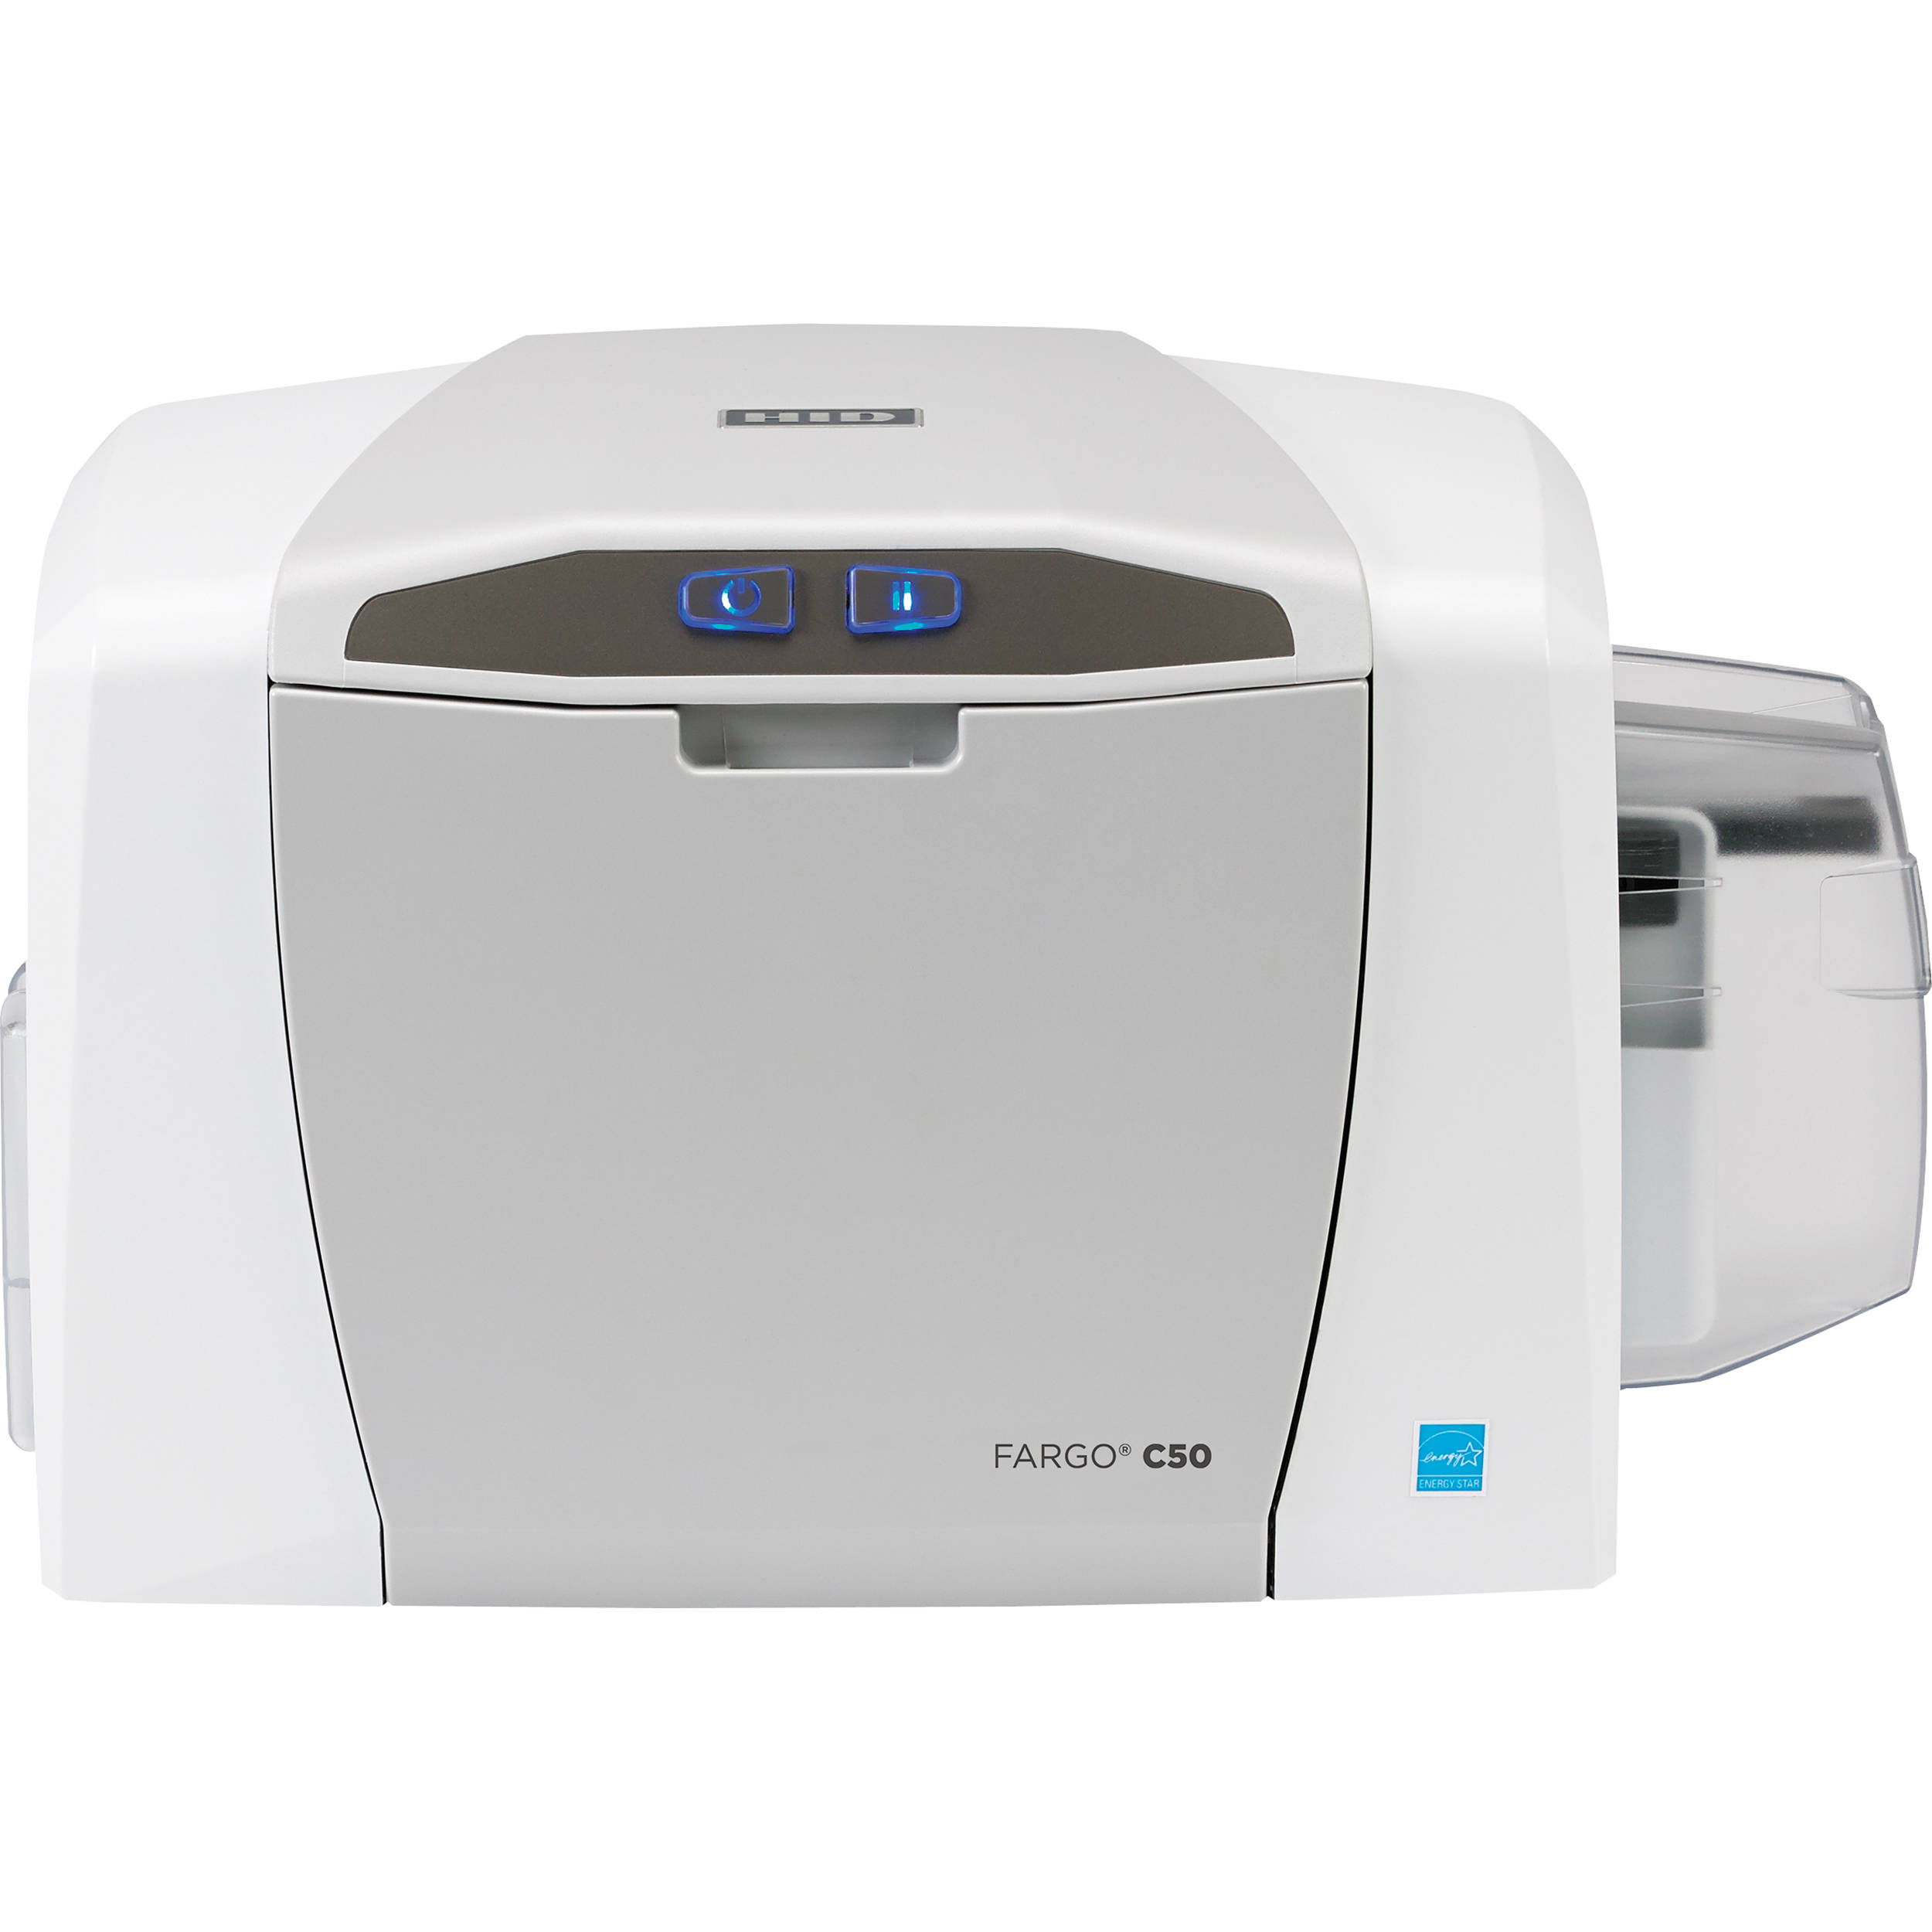 fargo c50 id card printer - Cheap Id Card Printer